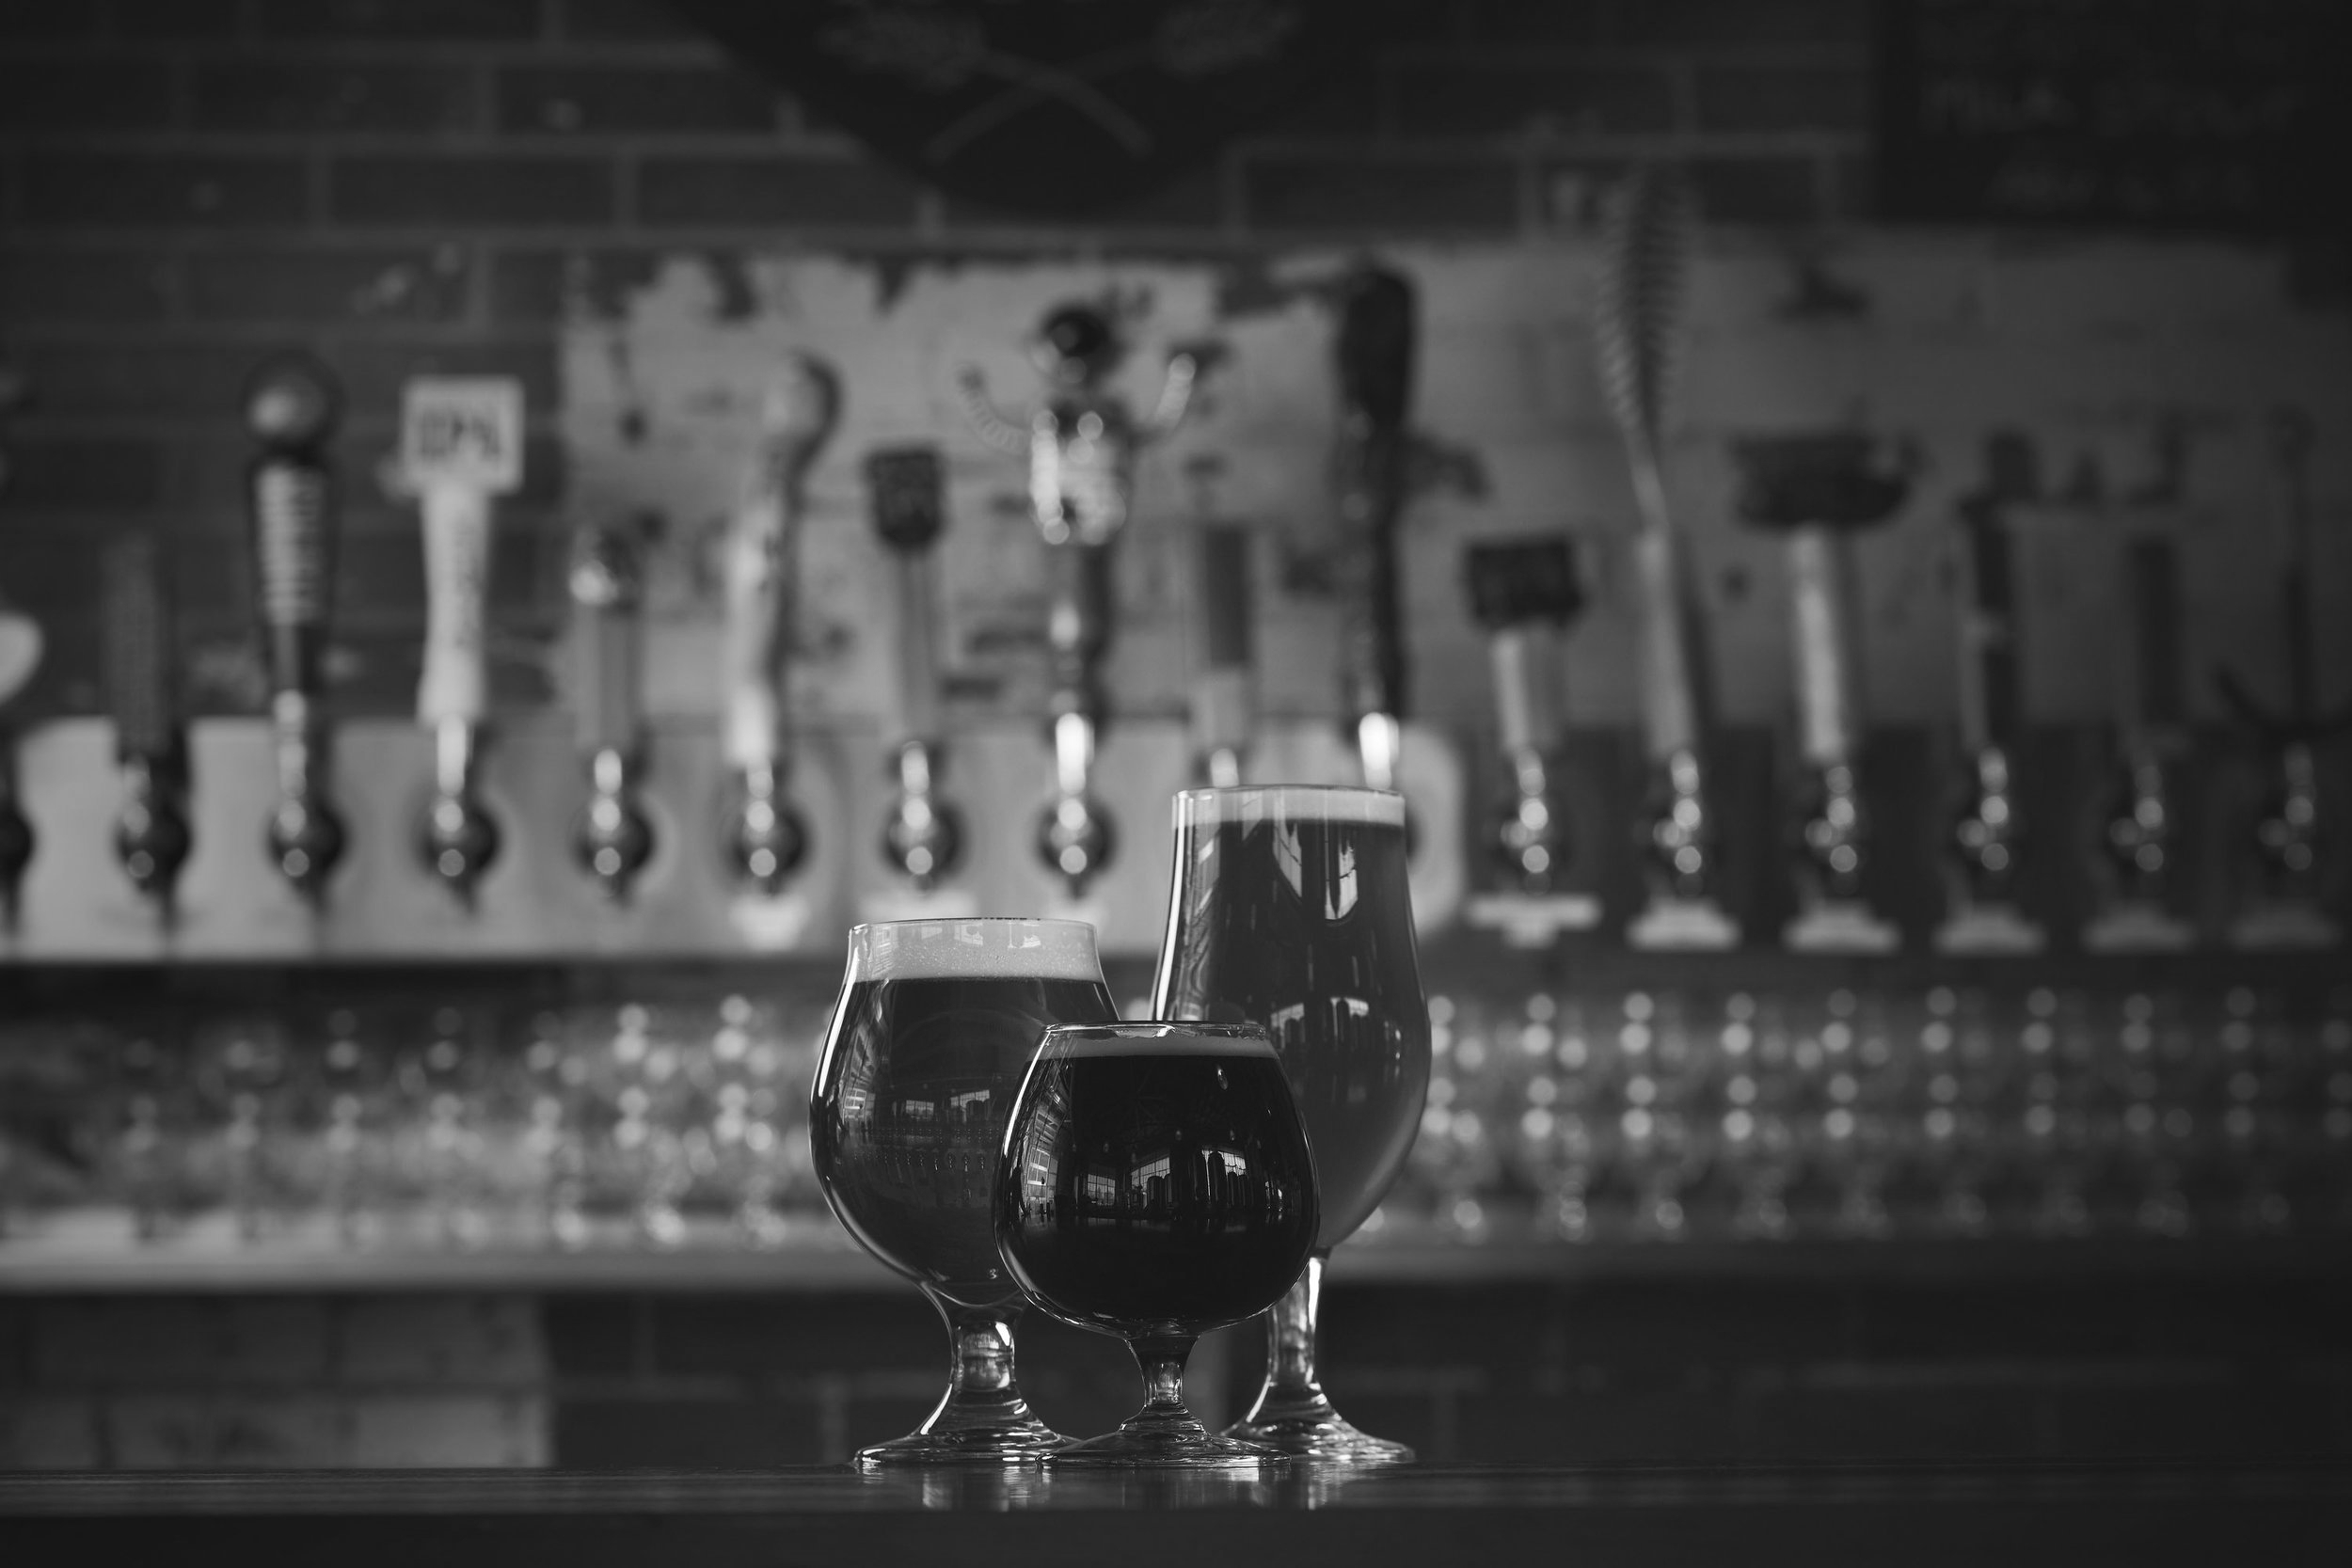 Photo 5: Photograph of several beers and glass options offered by Dry Ground Brewing.